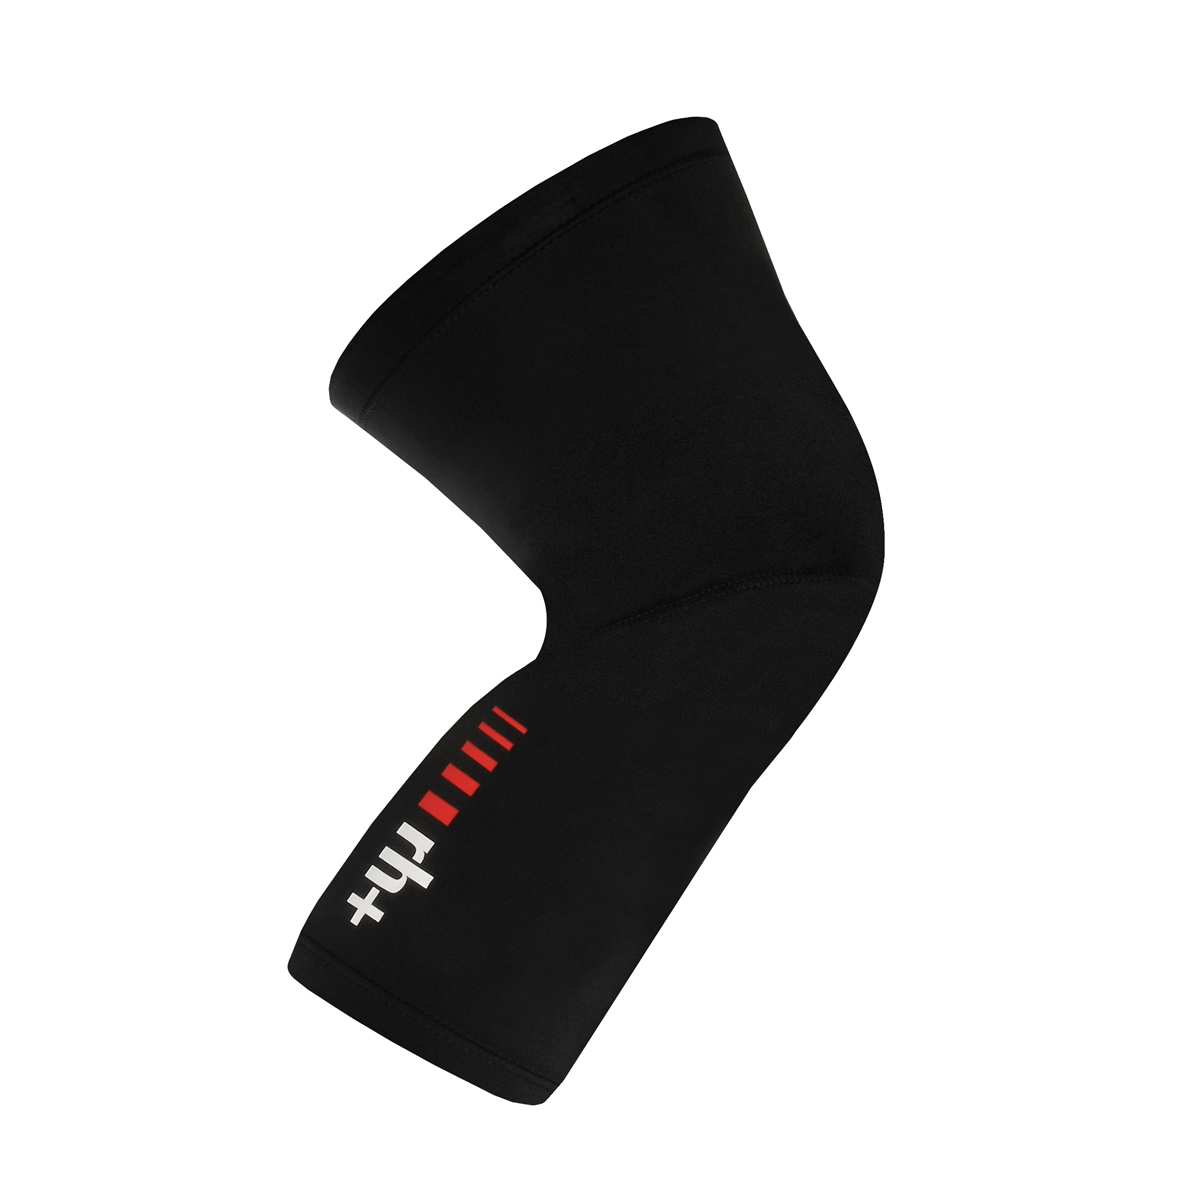 RH+ Air Knee-Cap black SSCX022-900